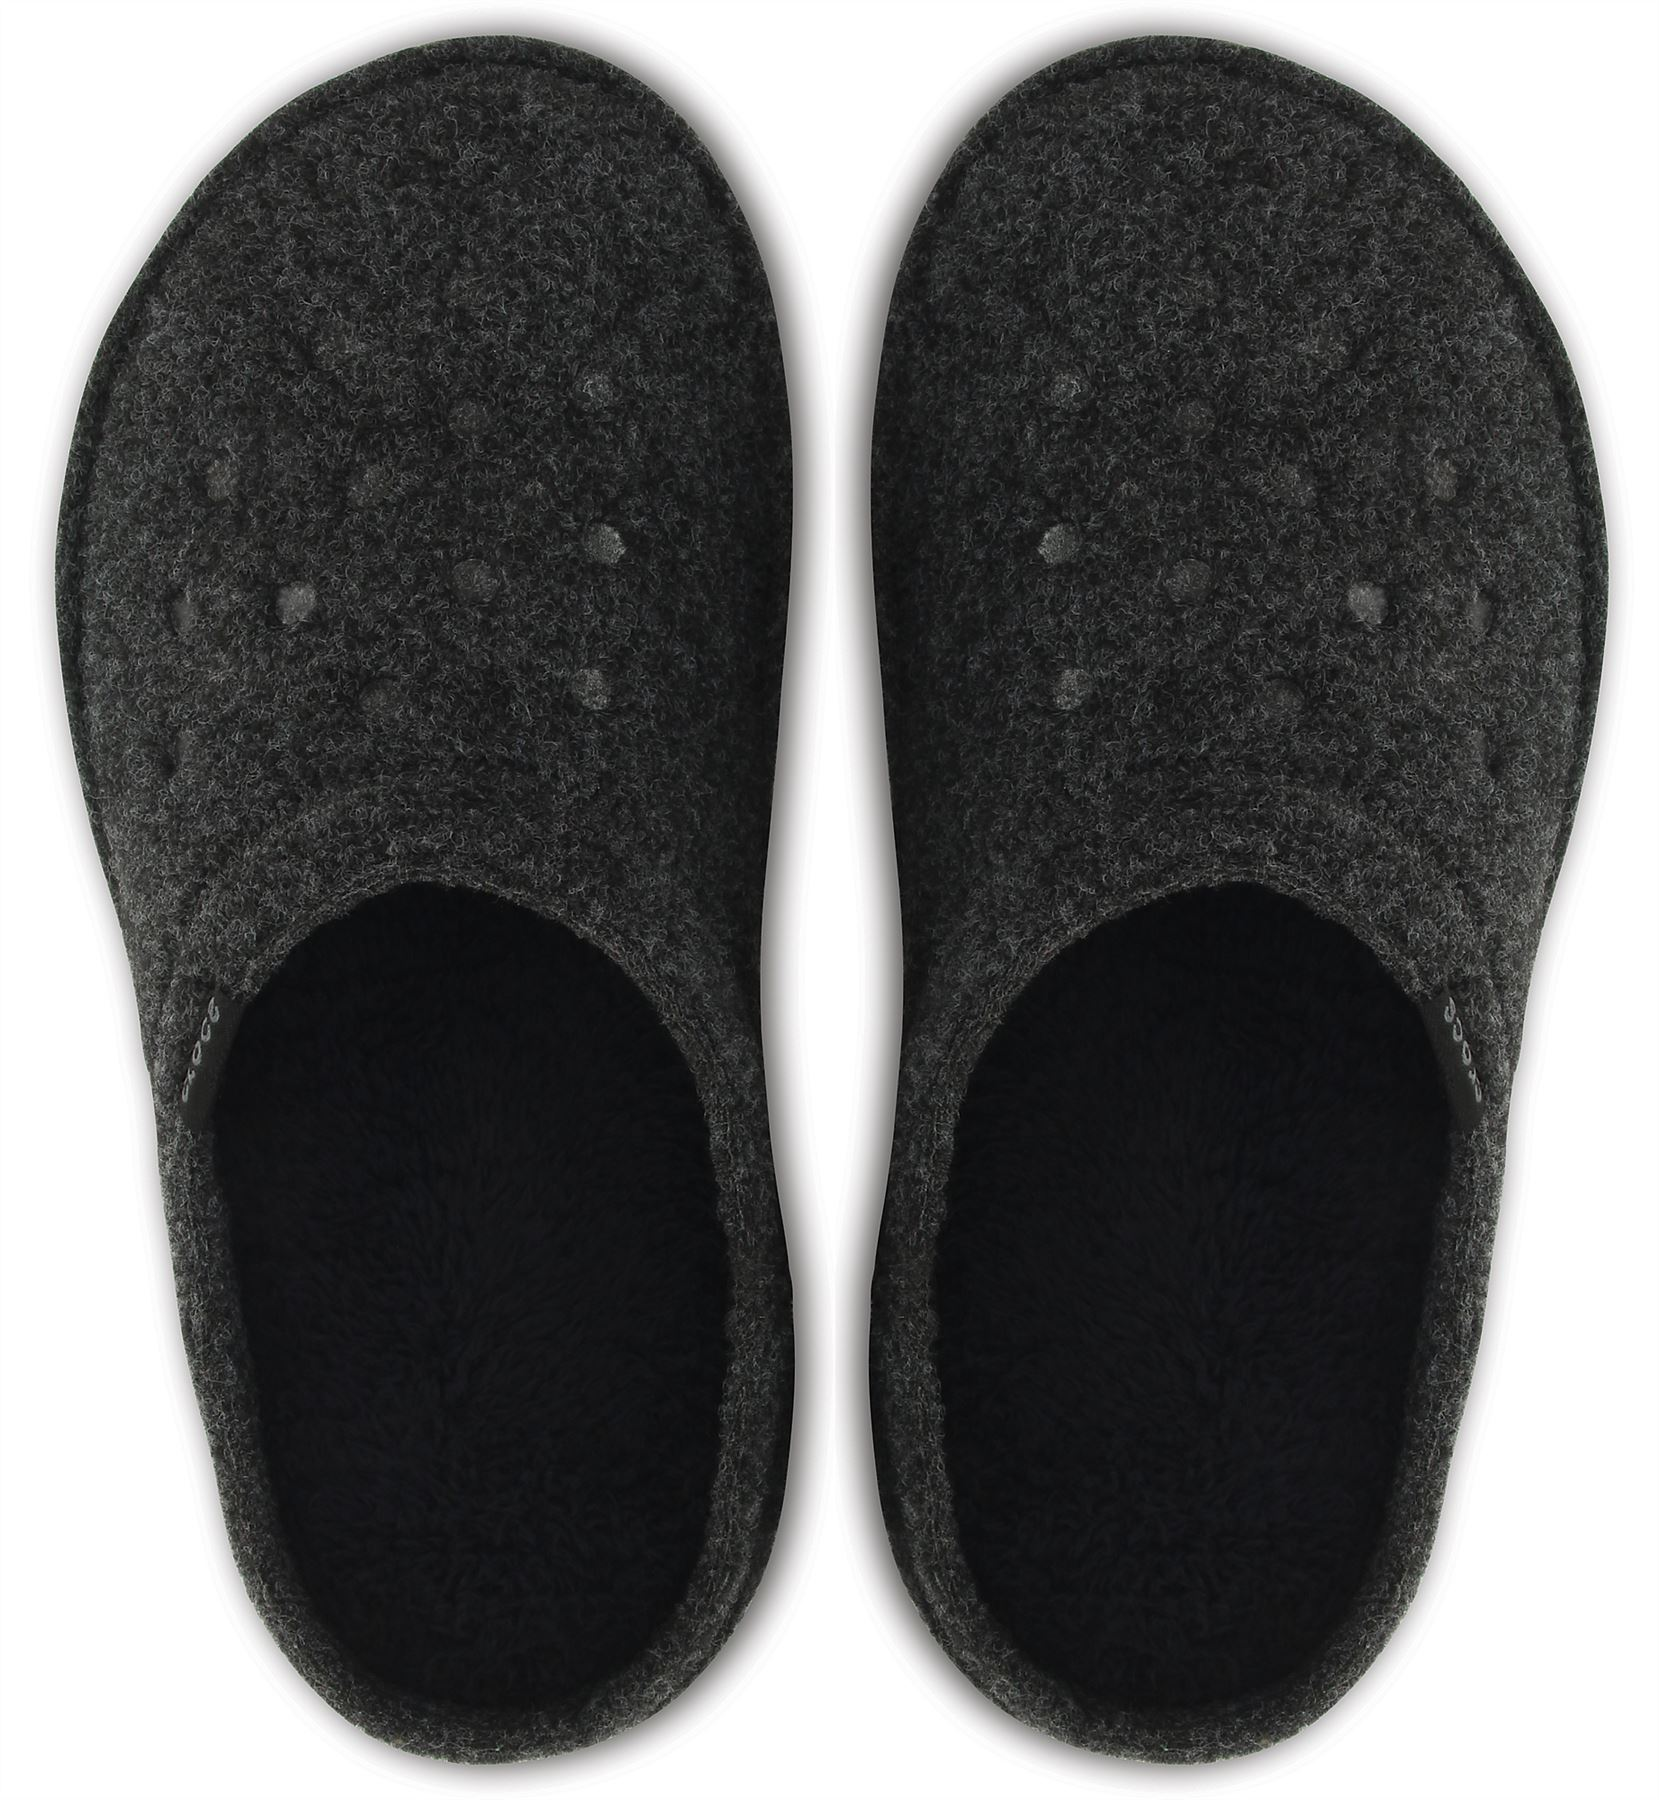 8f425a84d3e0 Crocs Classic Slipper Fleece Lined Roomy Fit Clogs Shoes in All ...